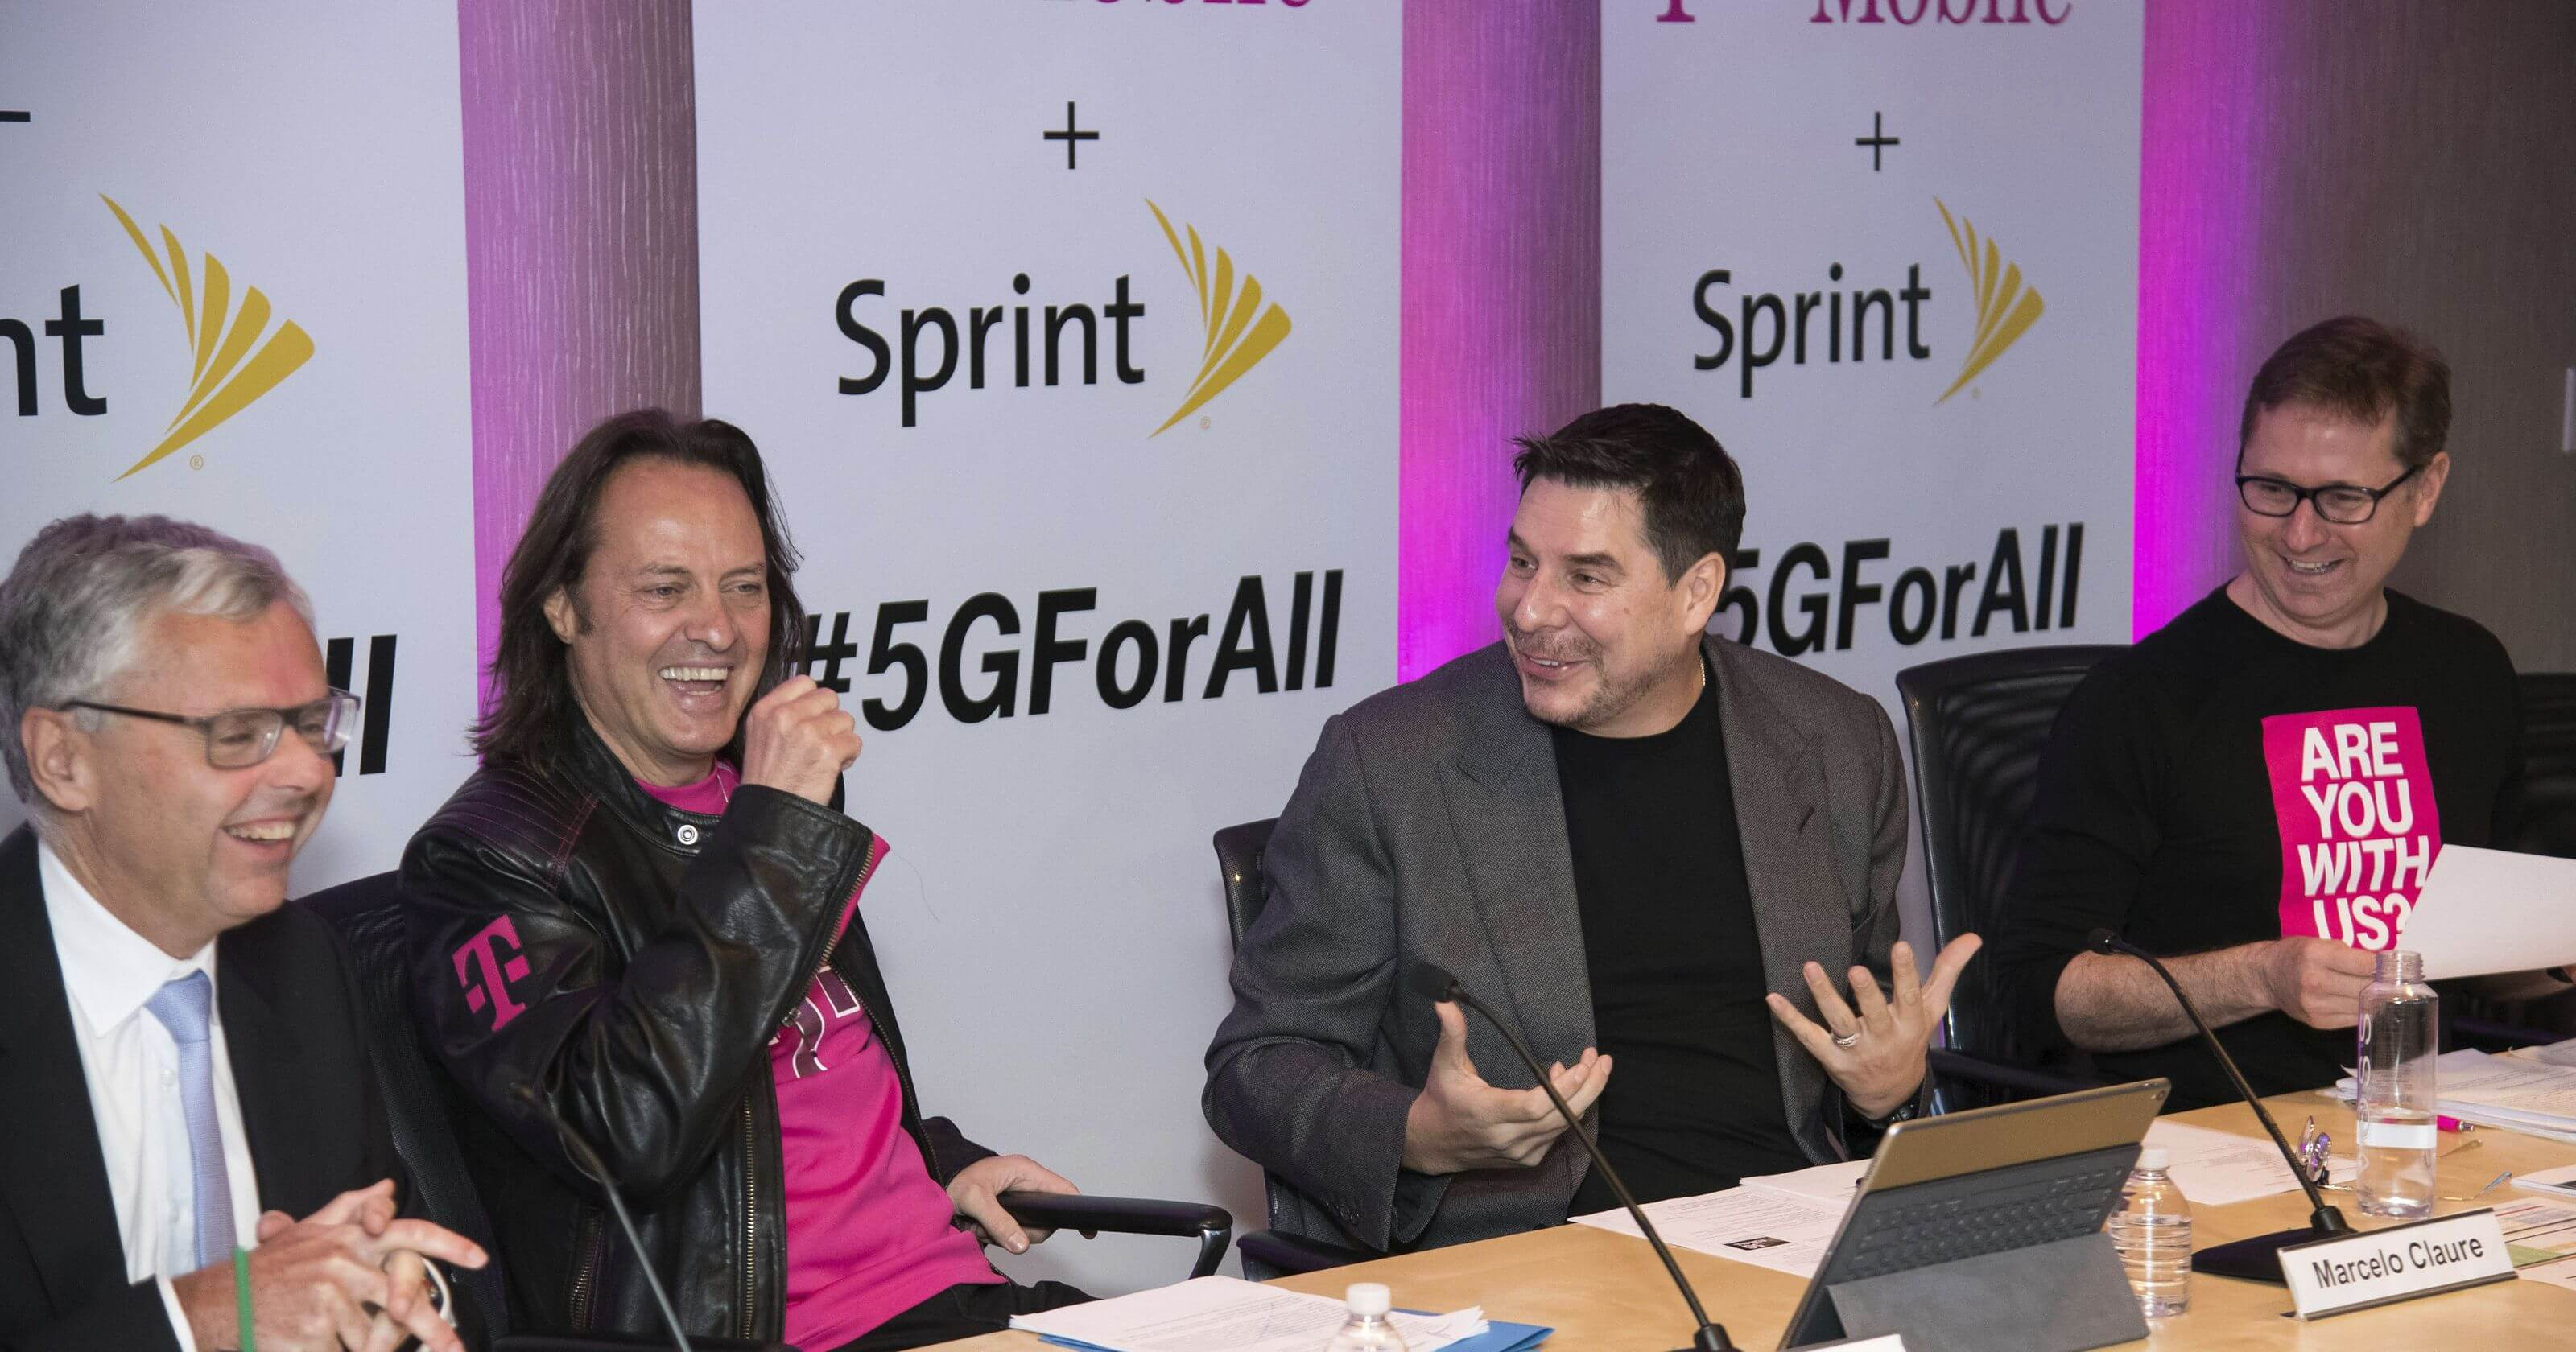 Sprint and T-Mobile move one step closer to merging together